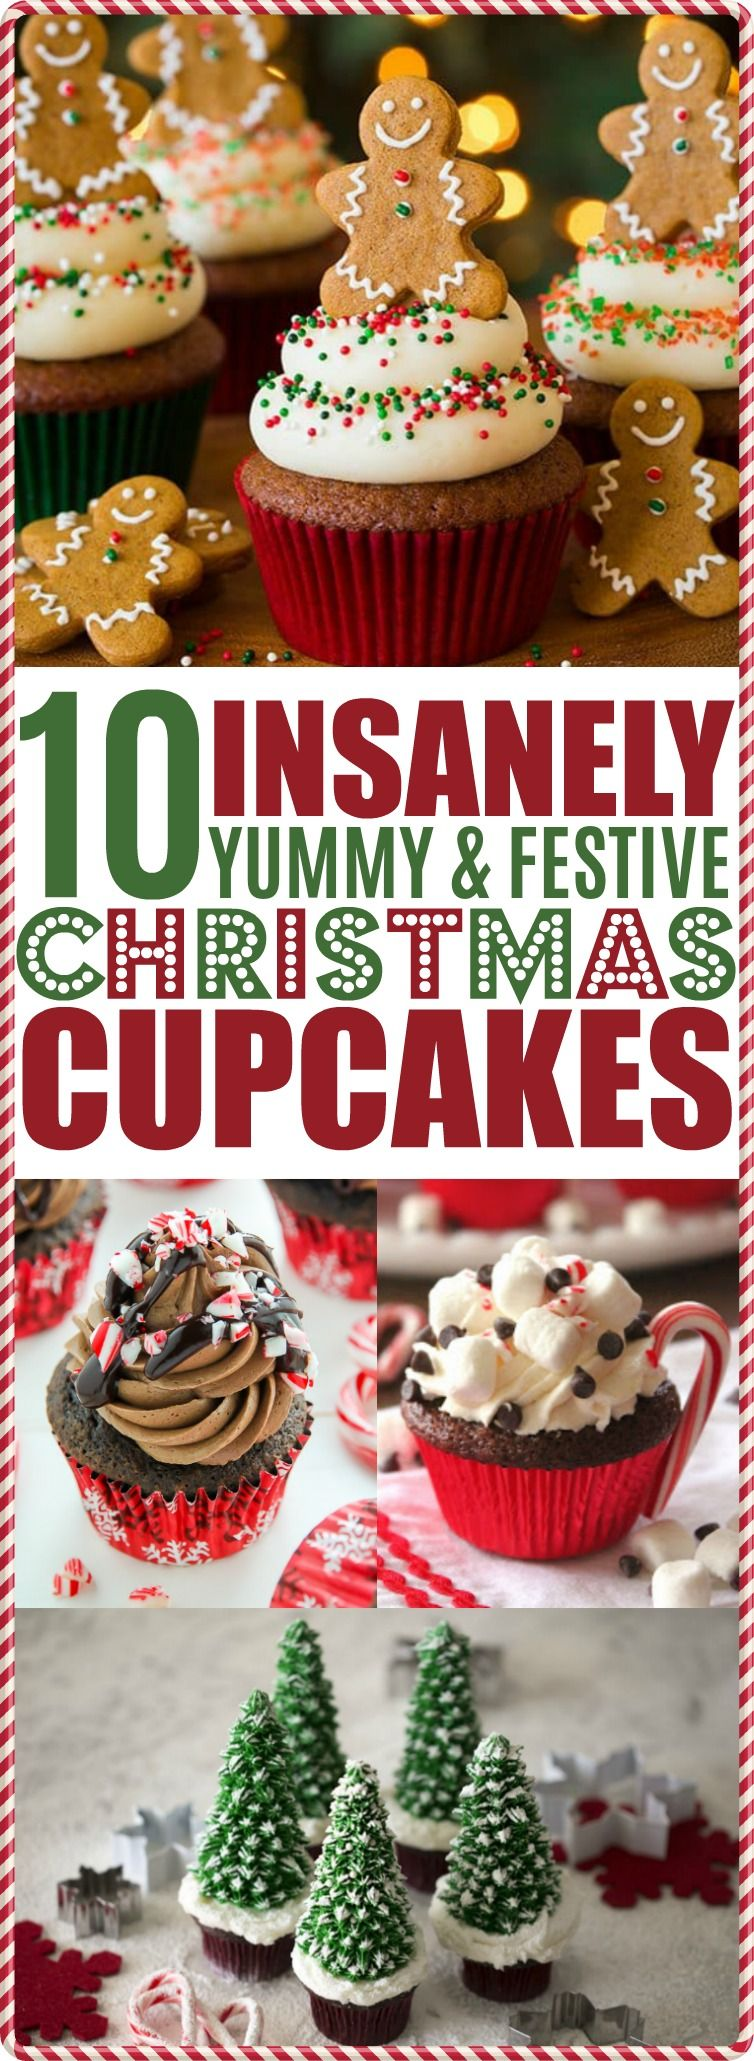 christmas cupcakeschristmas cupcake ideas christmas cupcakes decoration holiday desserts